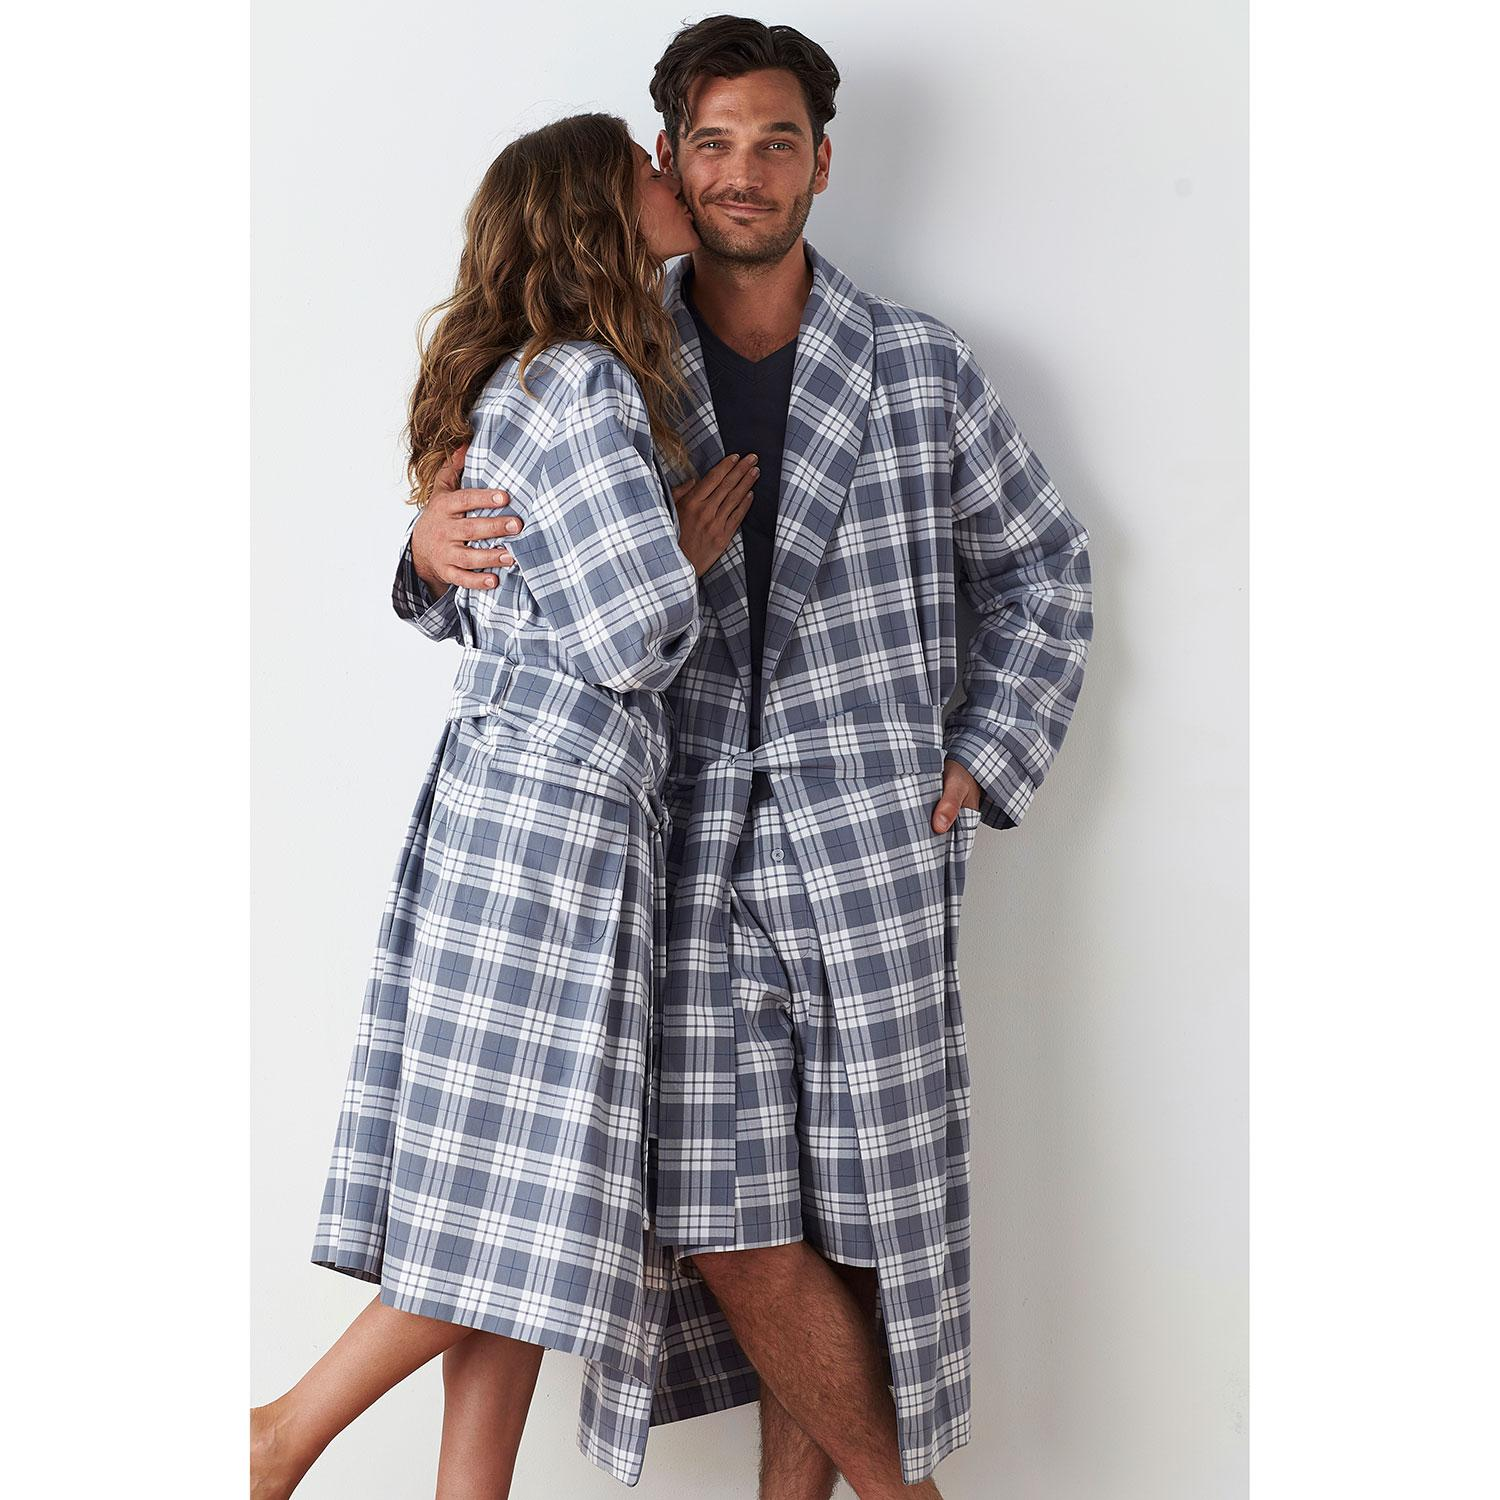 74df791630 20+ Pima Cotton Sleepwear Pictures and Ideas on Meta Networks